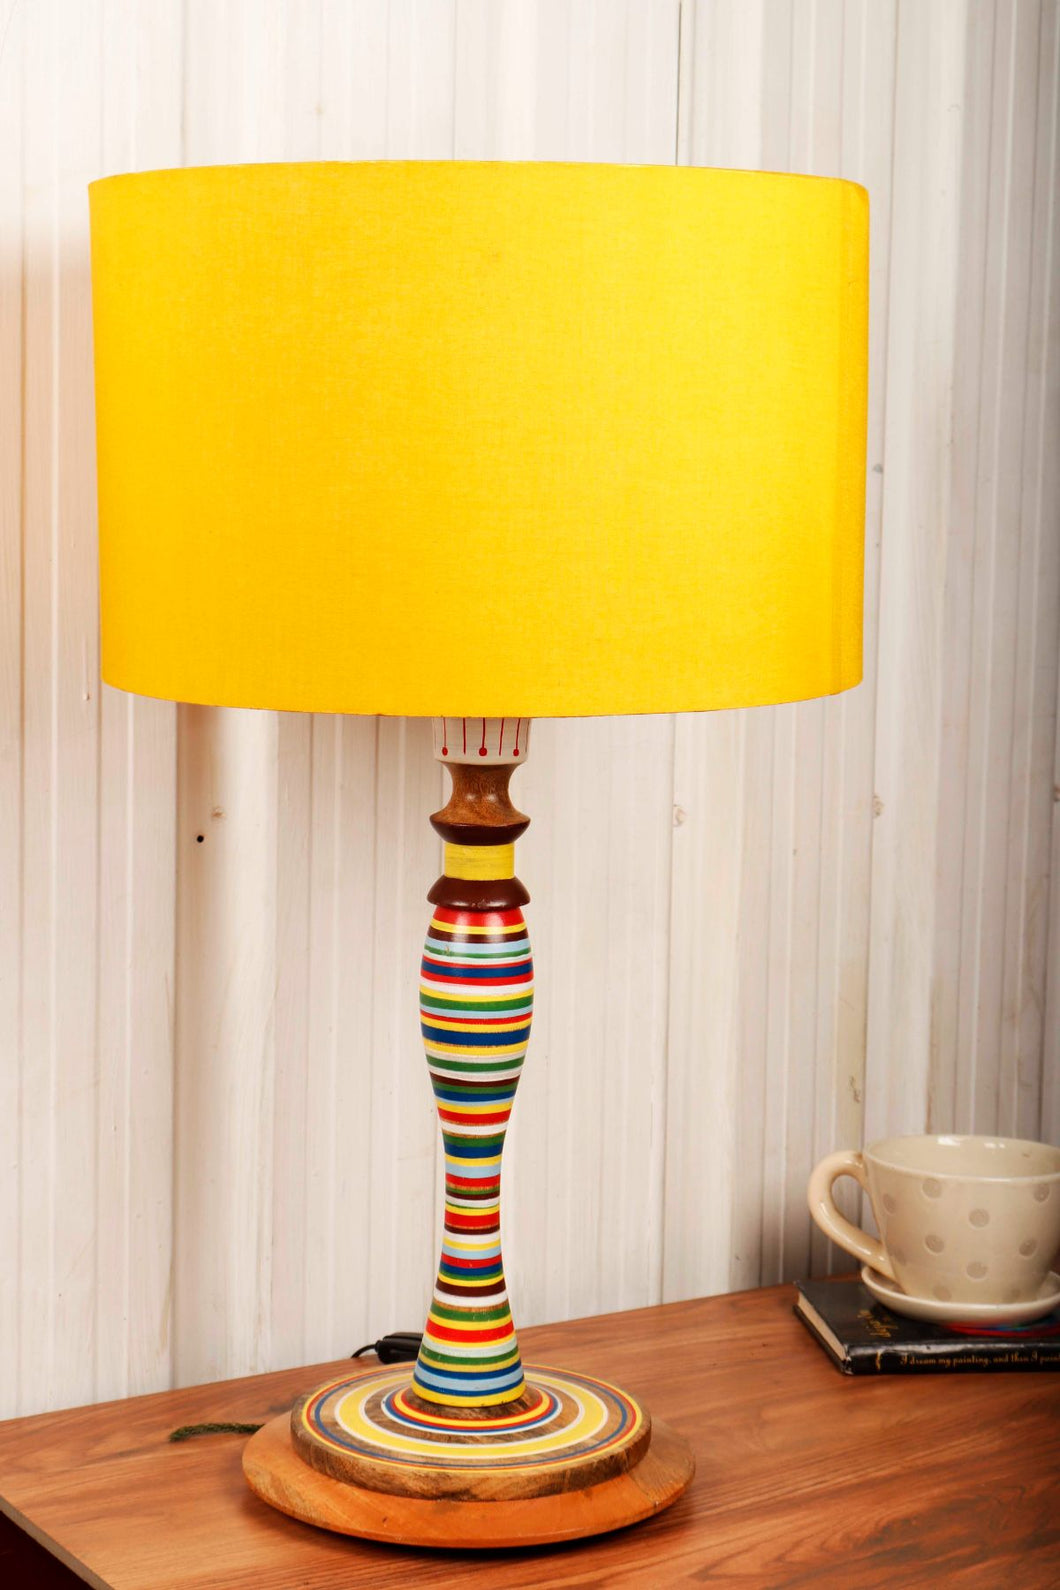 Splendid Table Lamp with 3 [YELLOW, BLACK, BROWN] Shade